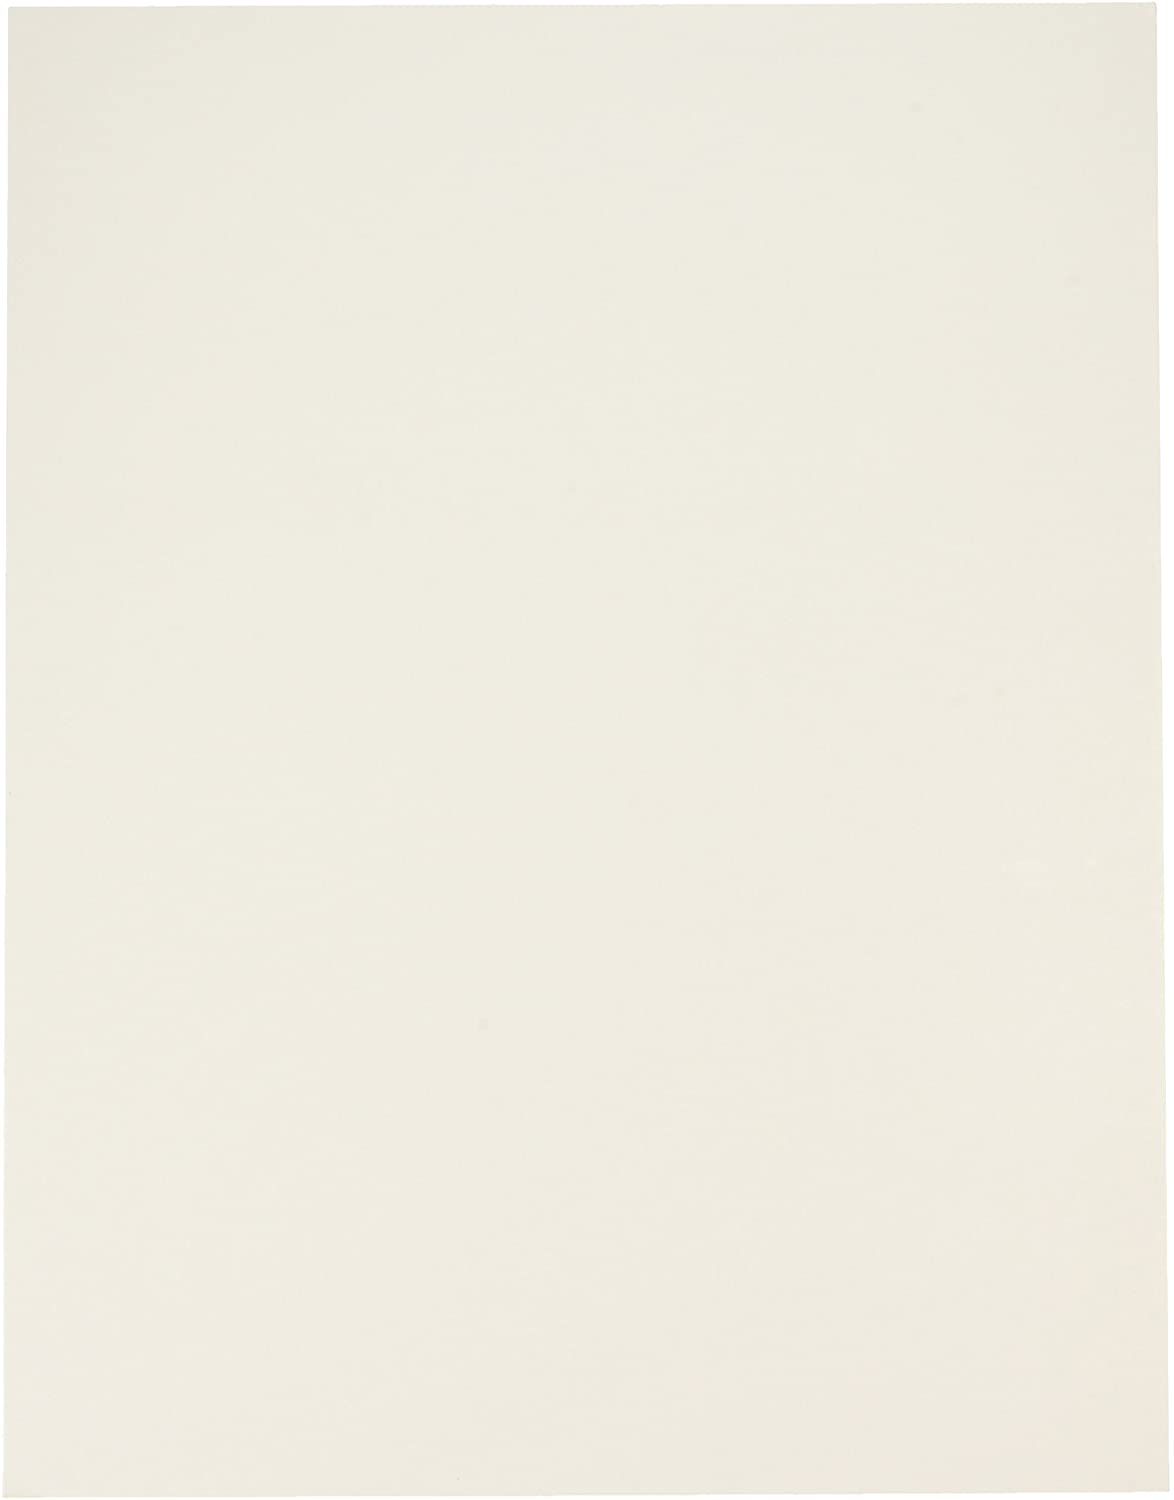 School Smart Poster Board, 11 x 14 Inches, White, Pack of 25 - 1371698